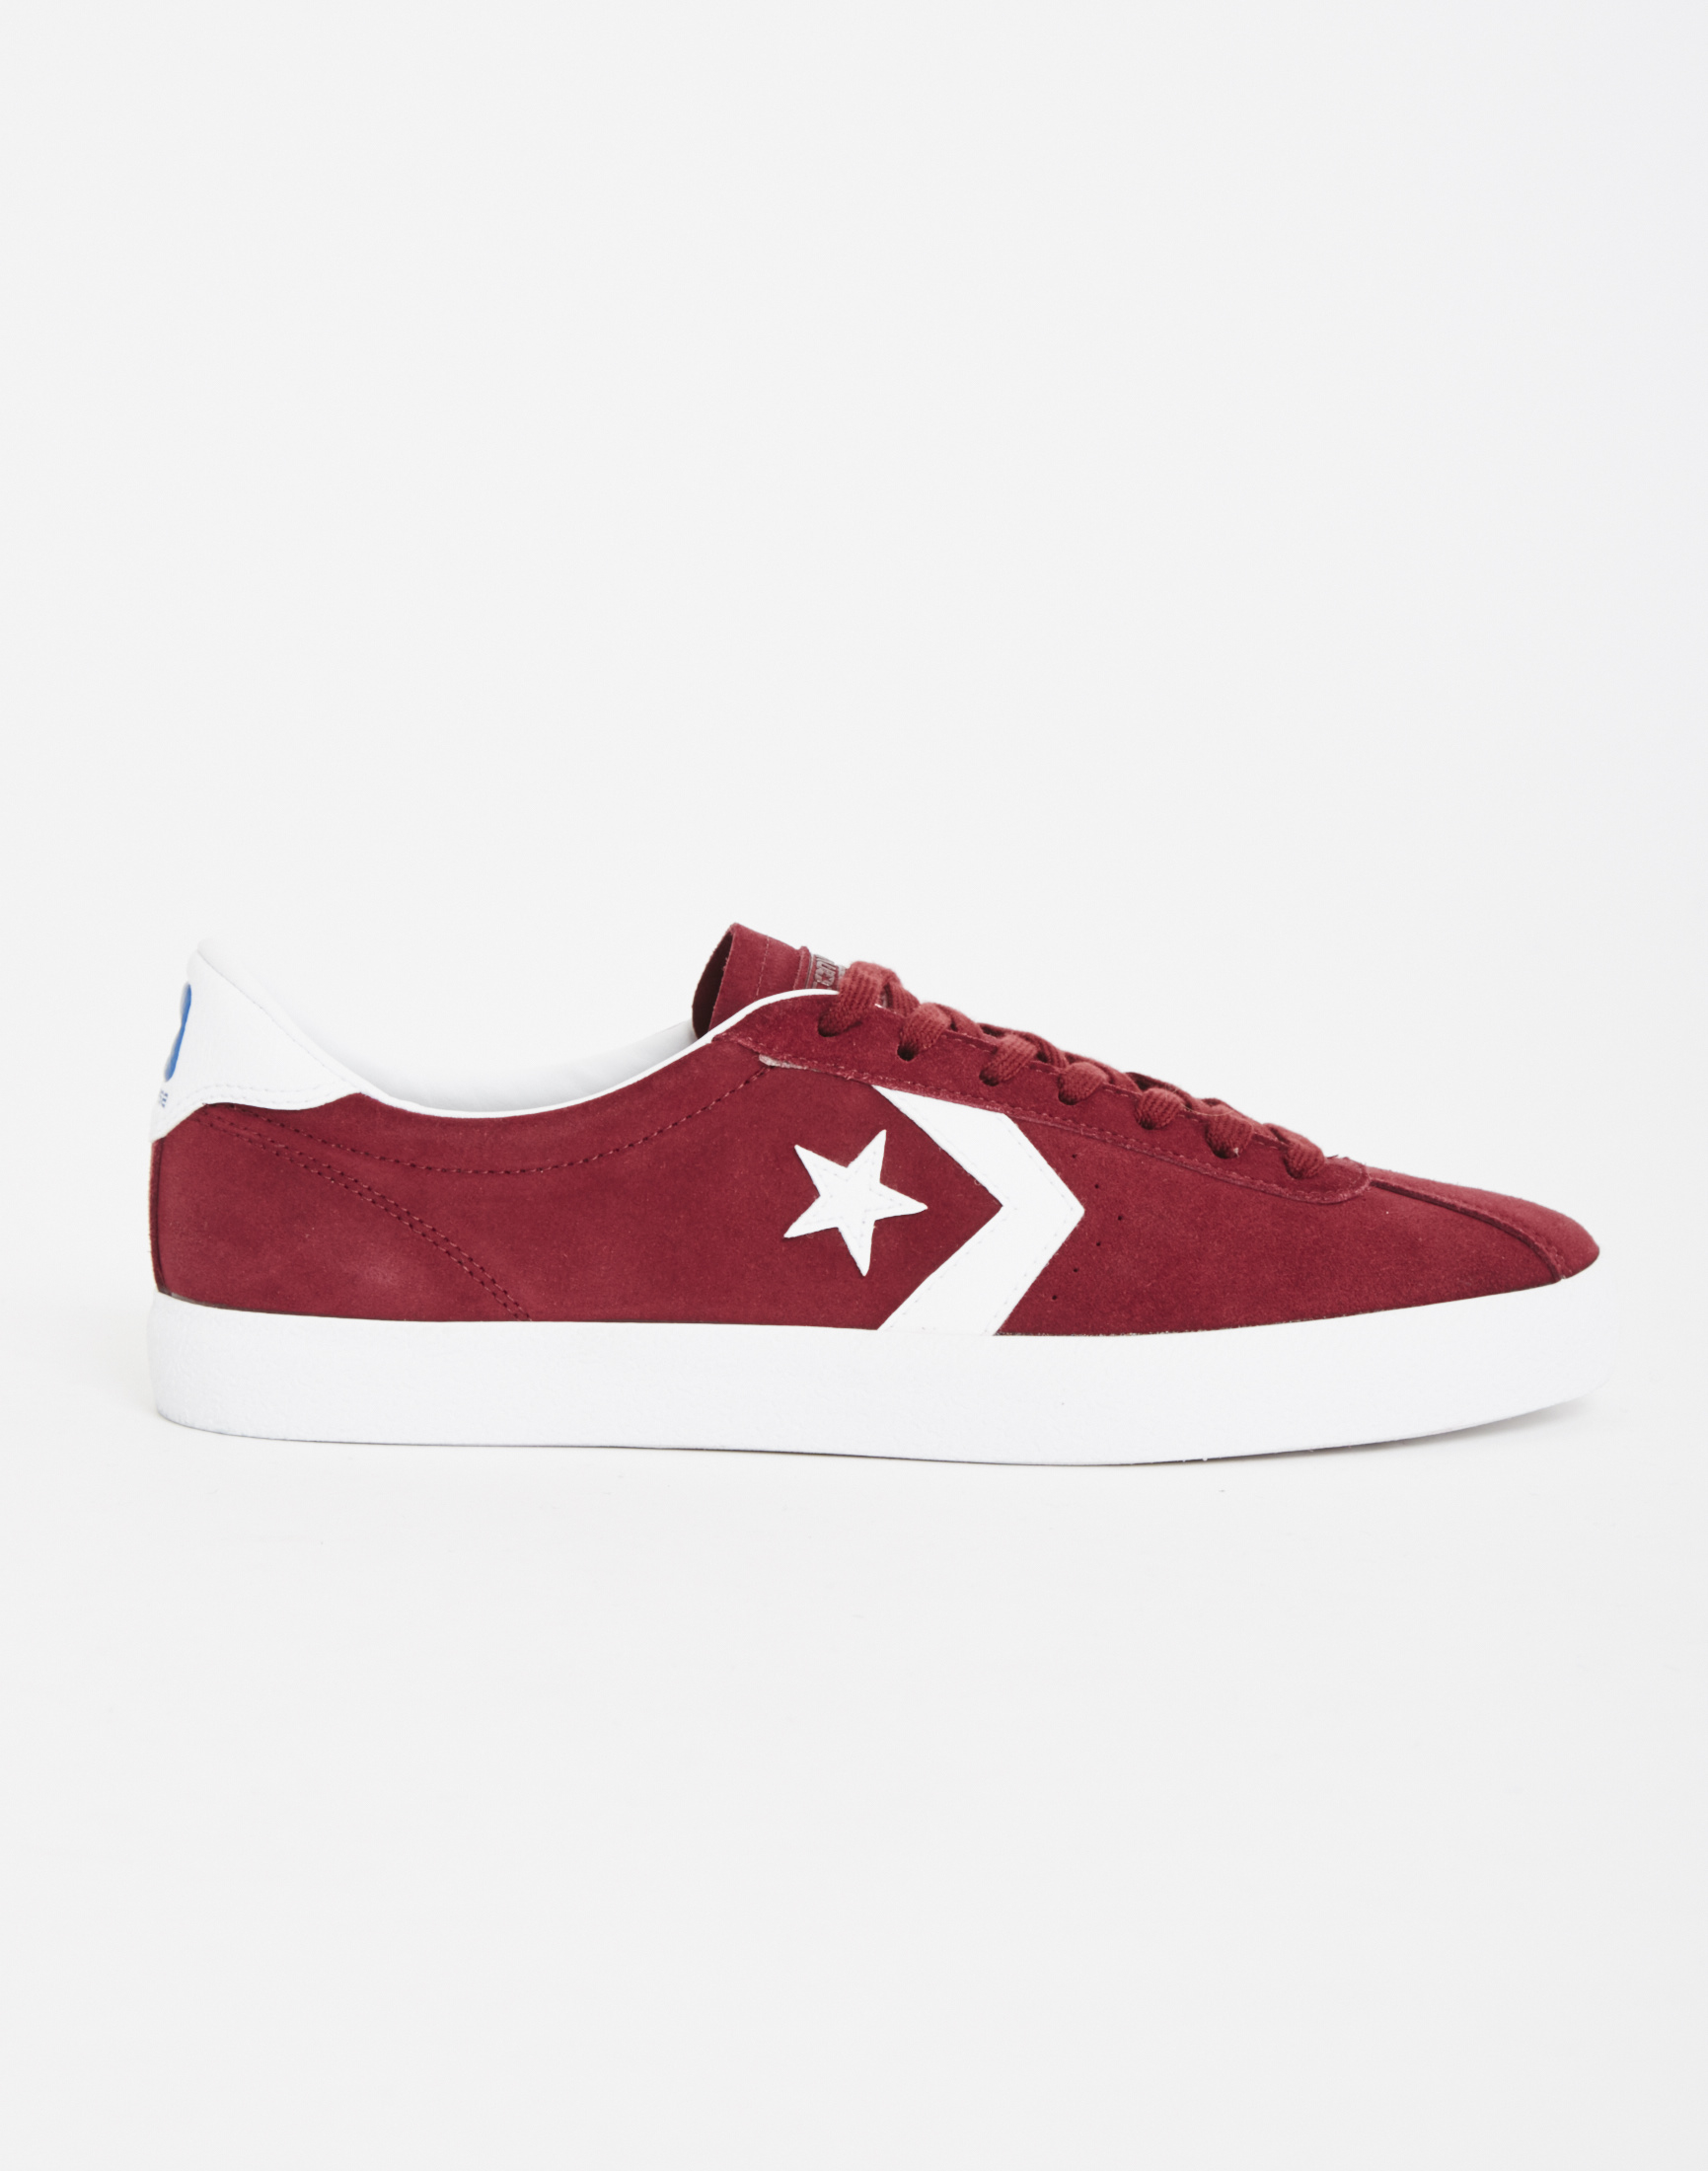 converse trainers burgundy